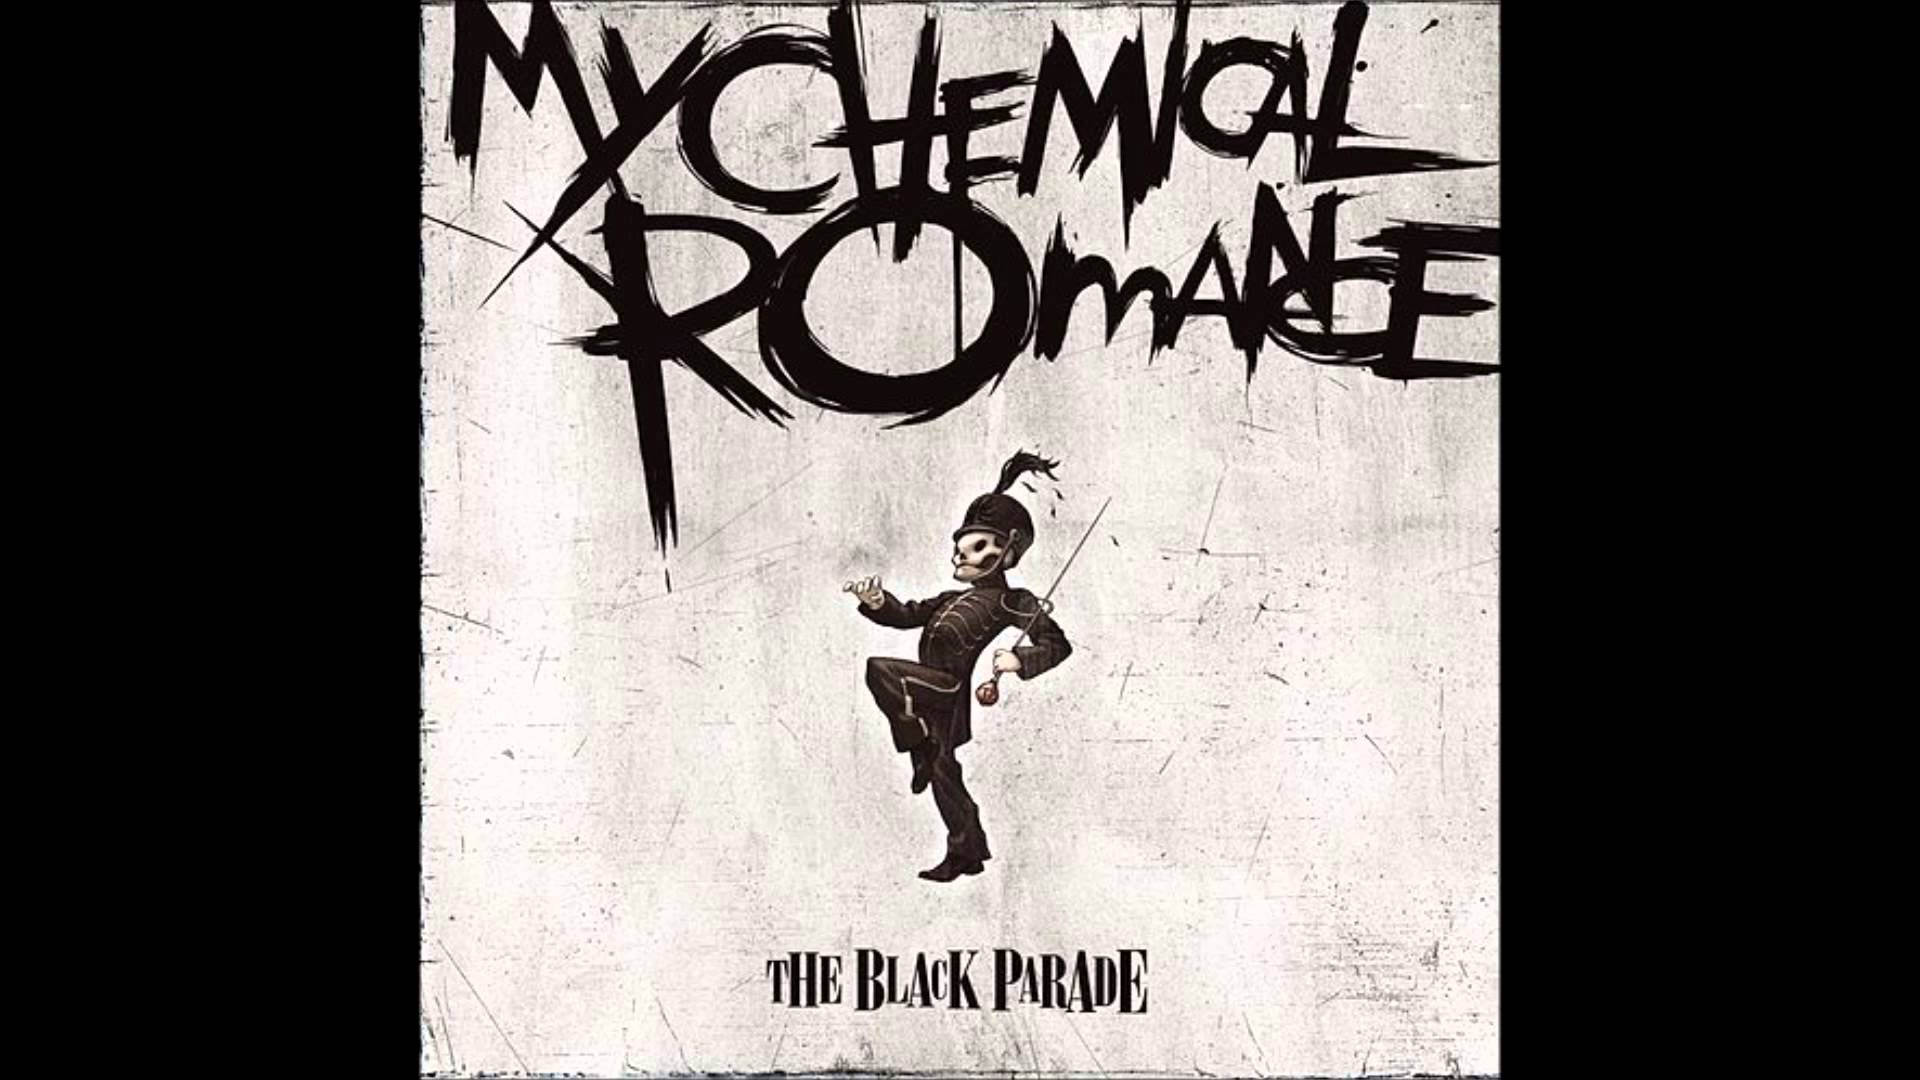 Welcome to the black parade free download/lyrics   - YouTube